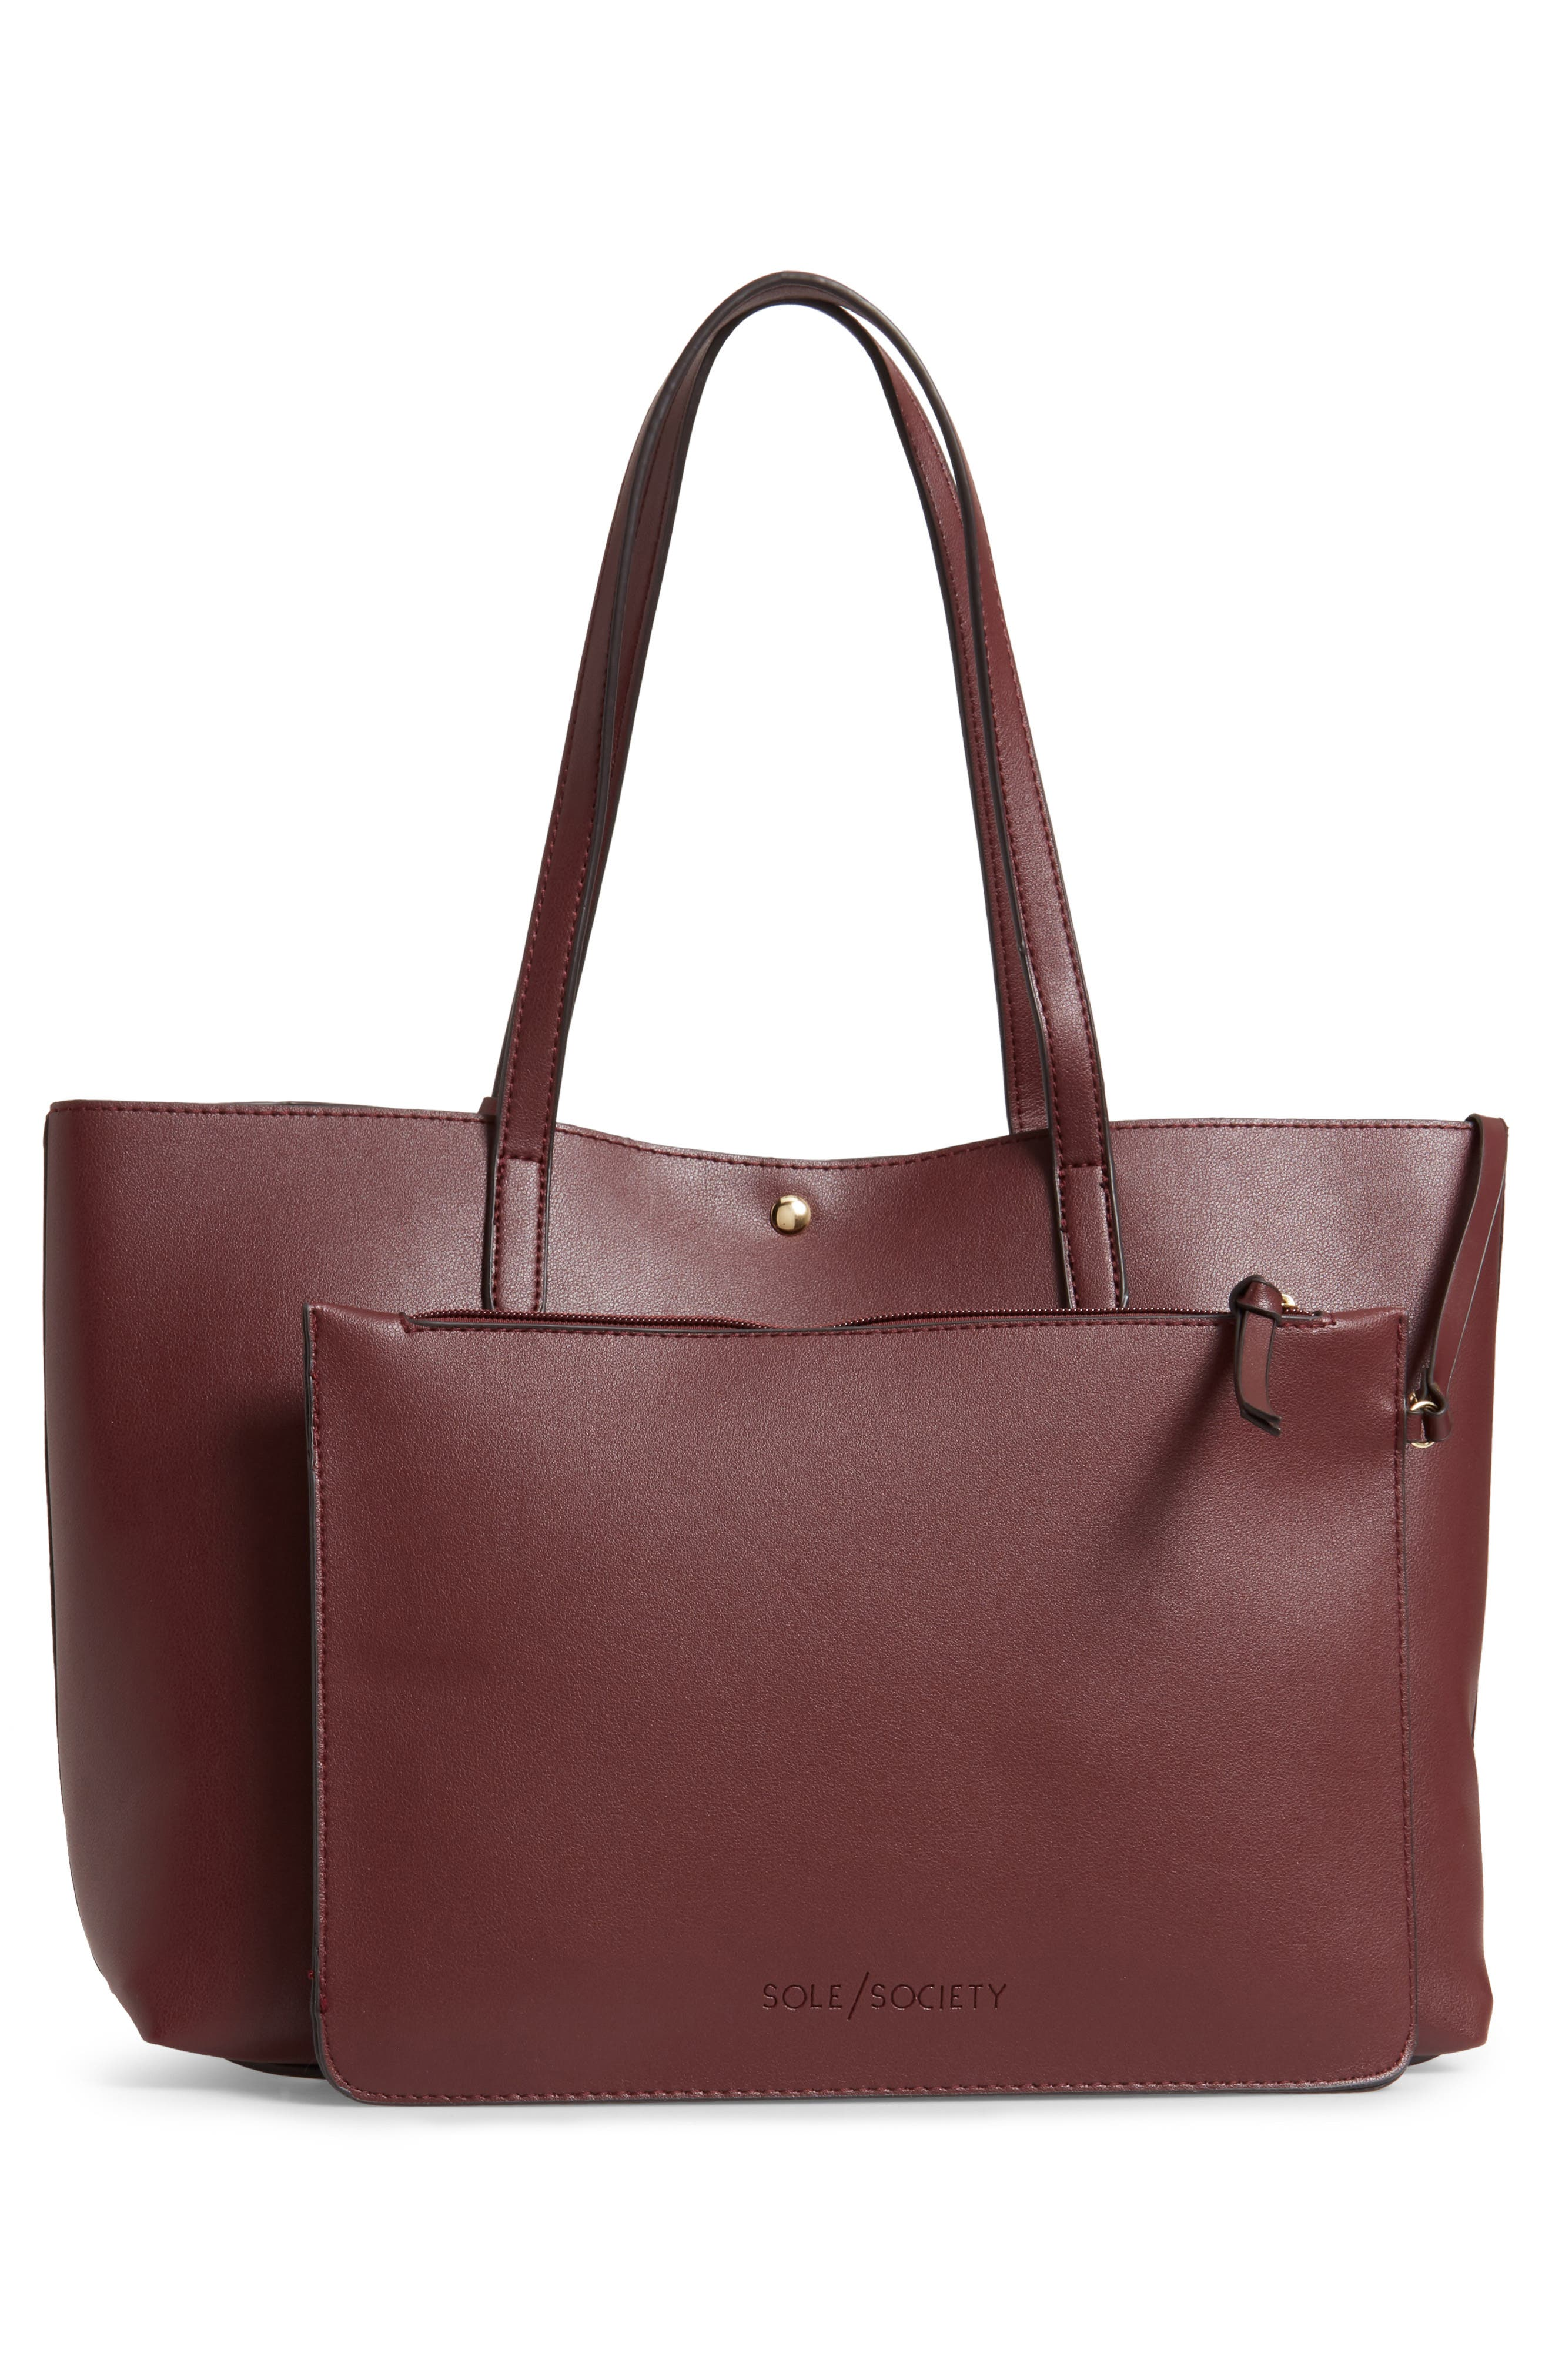 SOLE SOCIETY, Zeda Faux Leather Tote, Alternate thumbnail 4, color, 930